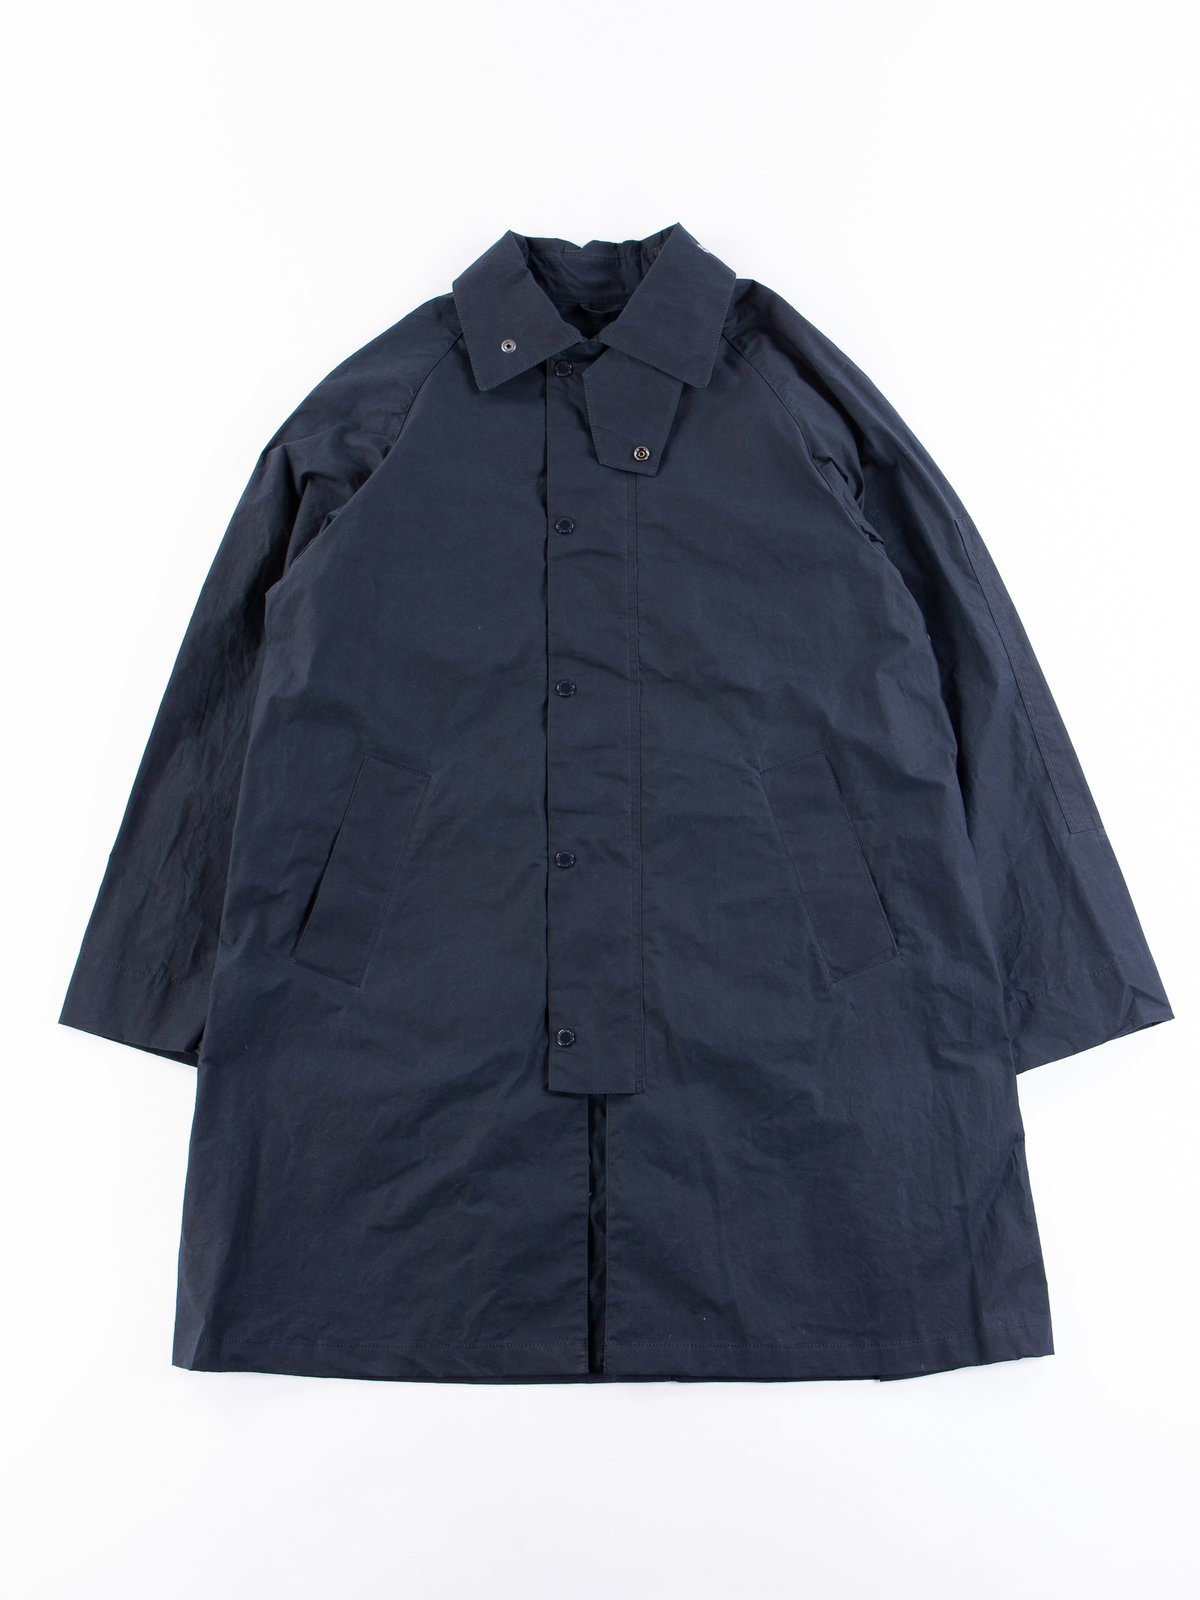 Navy South Overcoat - Image 1